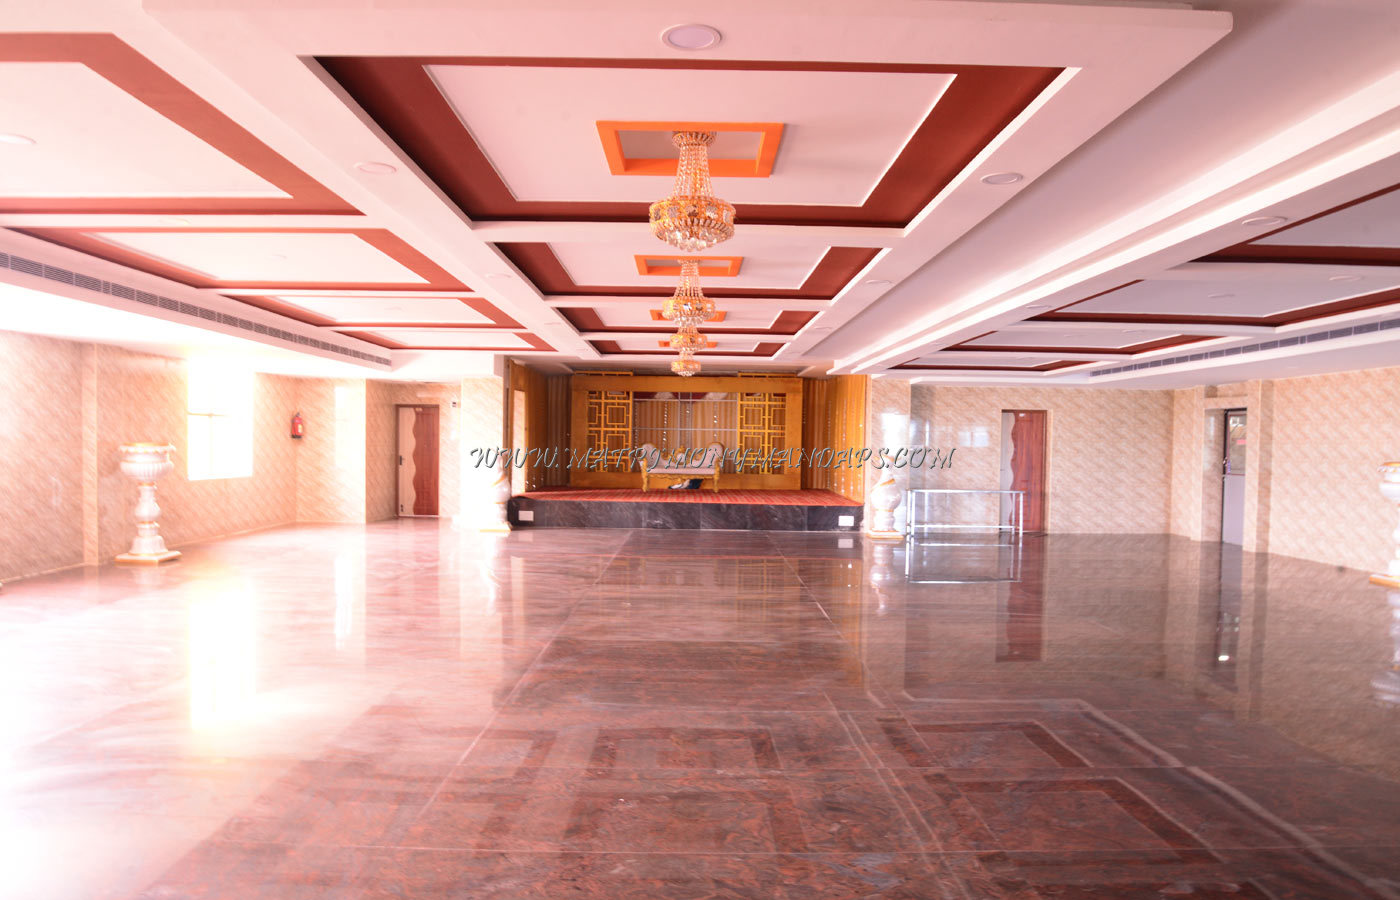 Find the availability of the NSK Mahal (A/C) in Thirunagar, Madurai and avail special offers